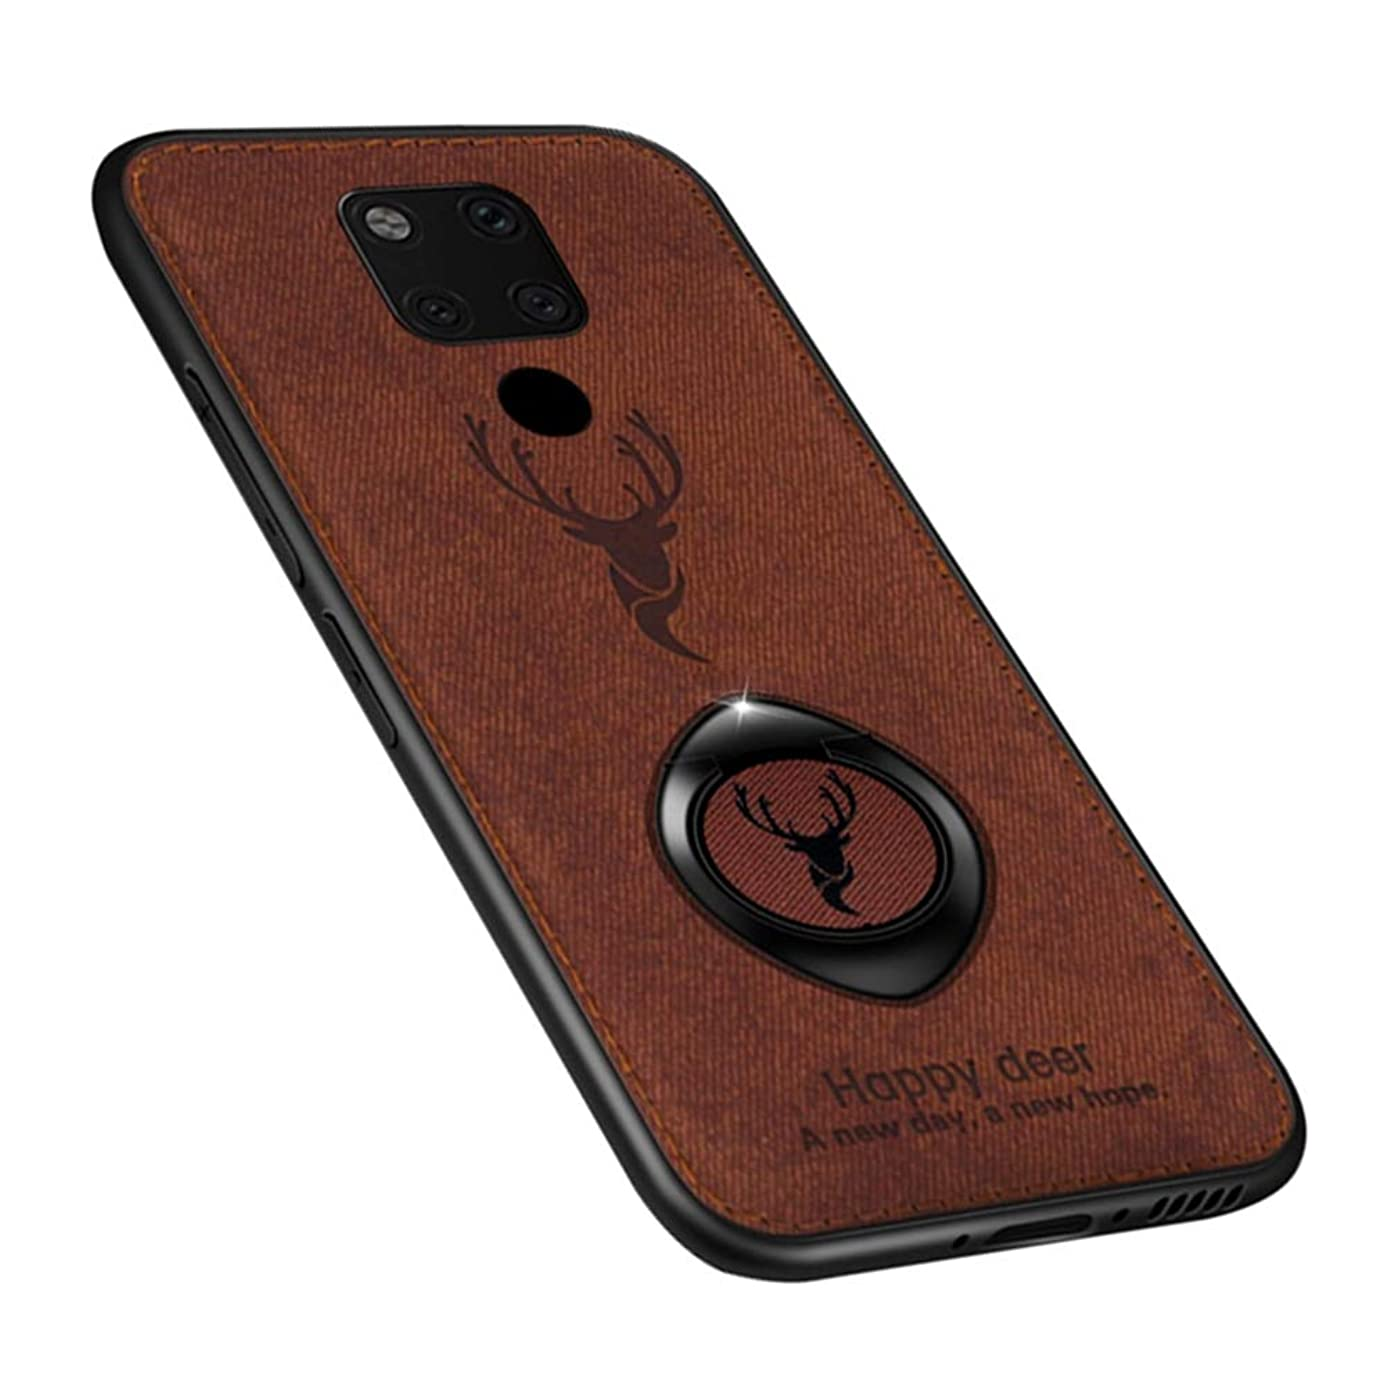 SHUNDA Huawei Mate 20 X Case, Slim Deer Head Pattern Fabric Case [Ring Stand Compatible with Magnetic car Bracket] Shockproof Hybrid Protective Cover for Huawei Mate 20 X - Brown